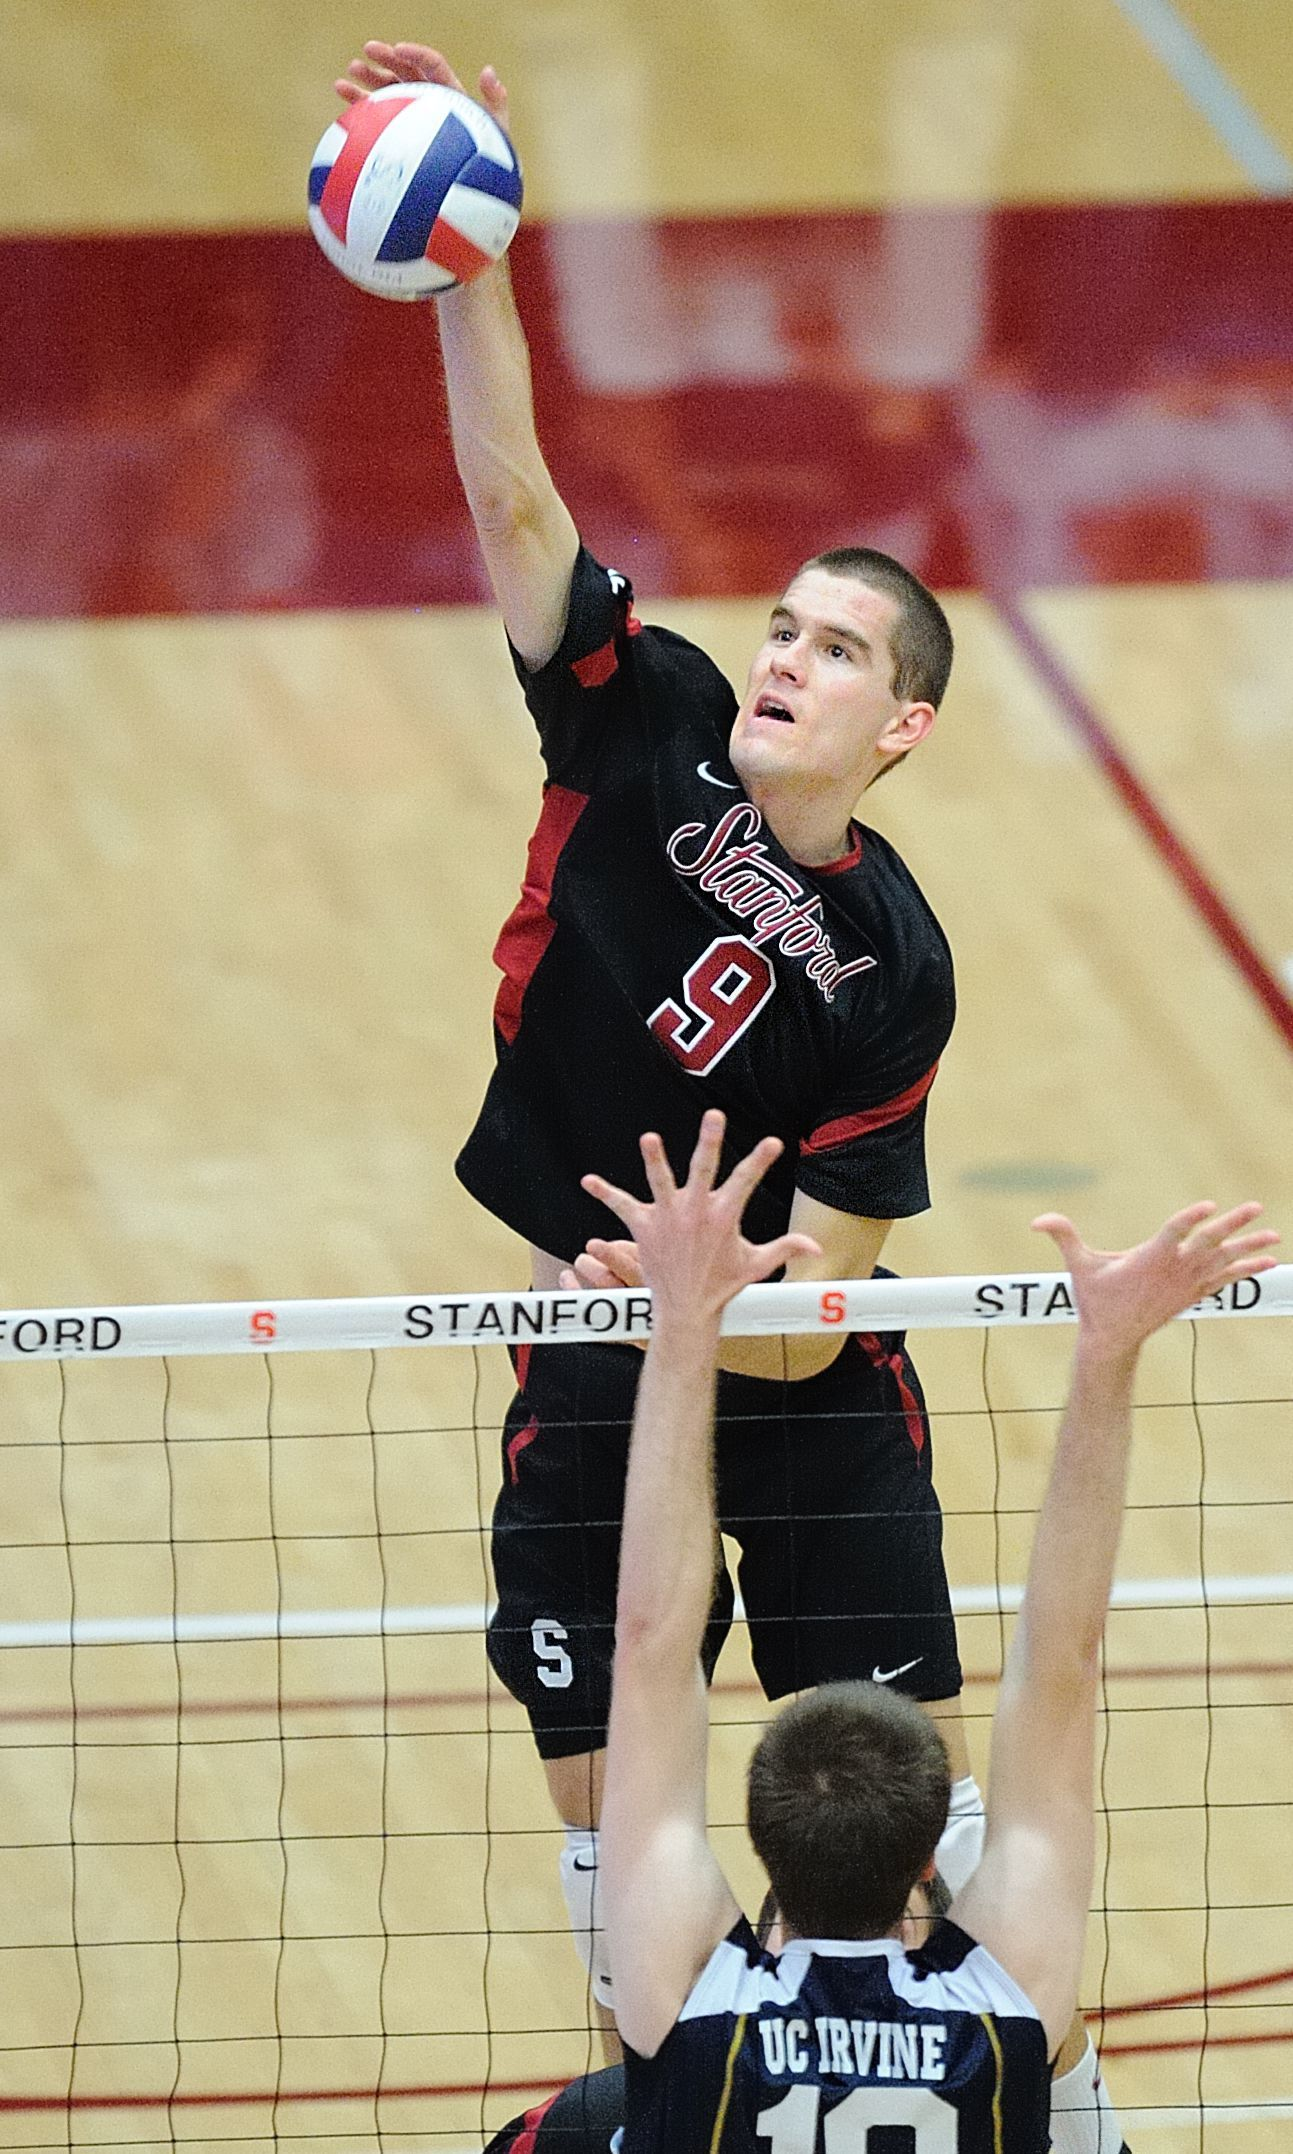 Are you hitting a volleyball as hard as you can